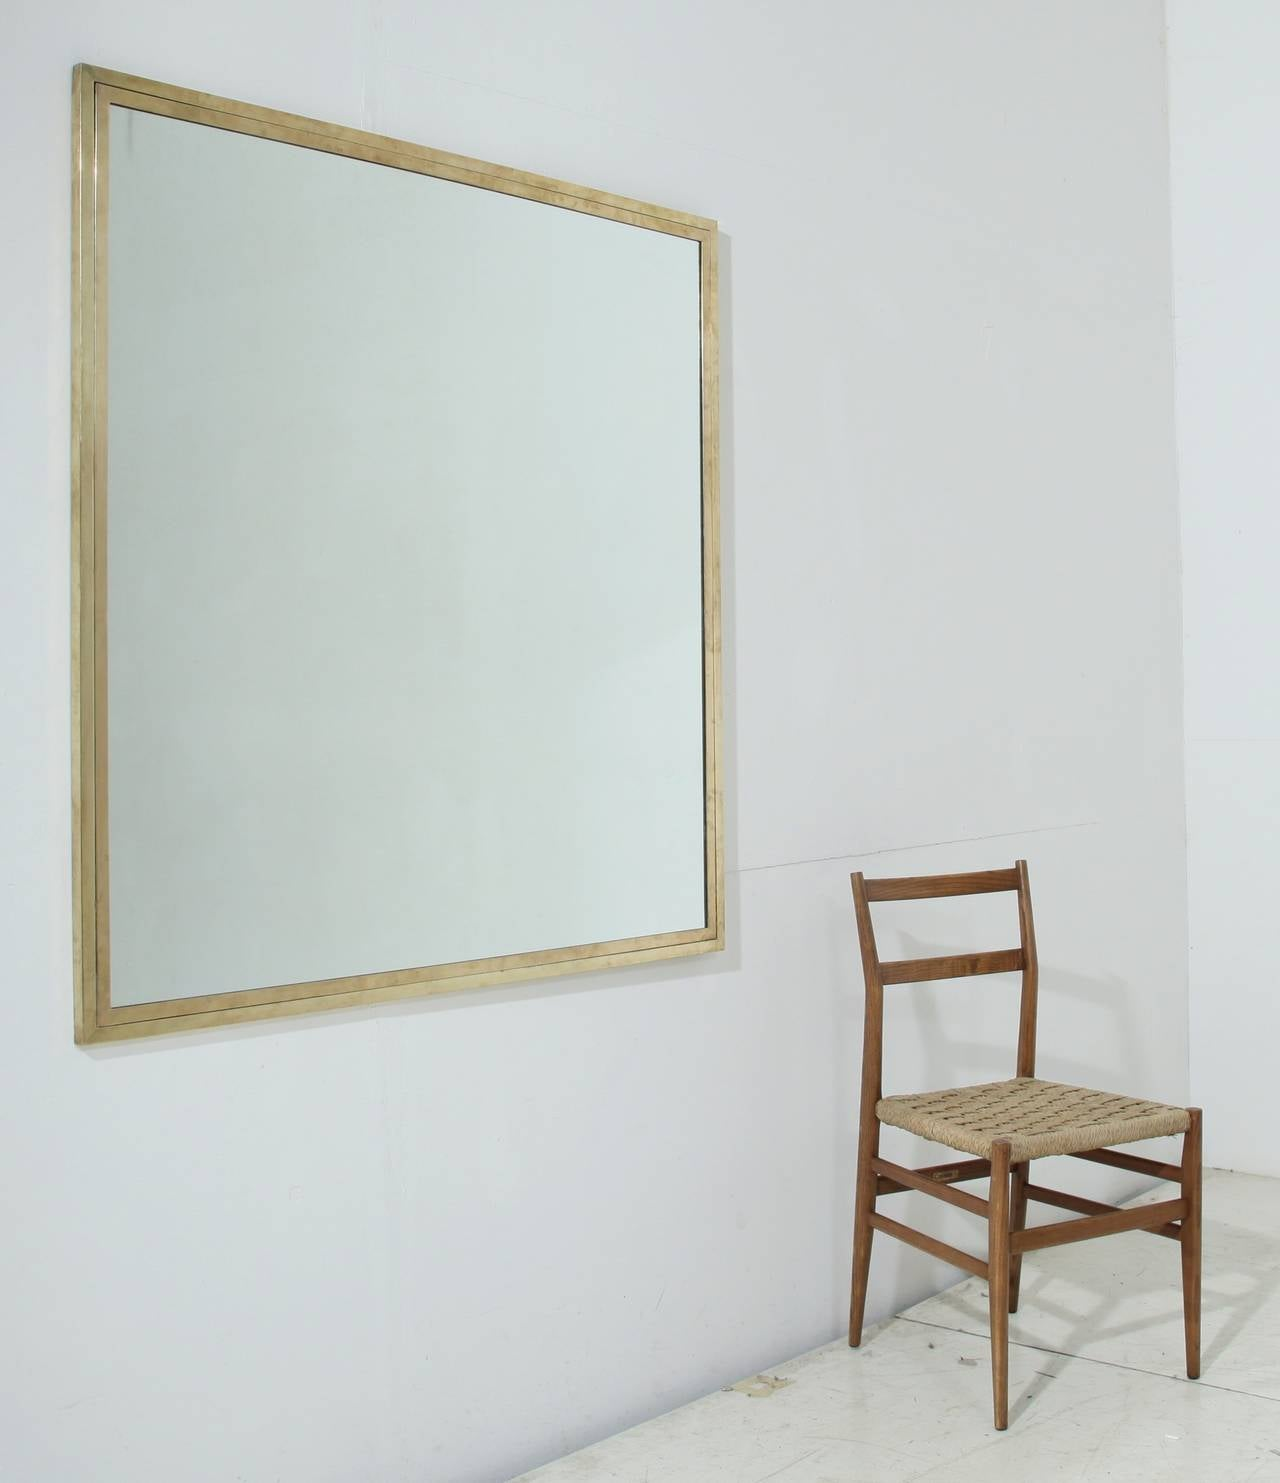 Mid Century Modern Italian 1950s Double Brass Framed Large Overmantel Or Wall Mirror For